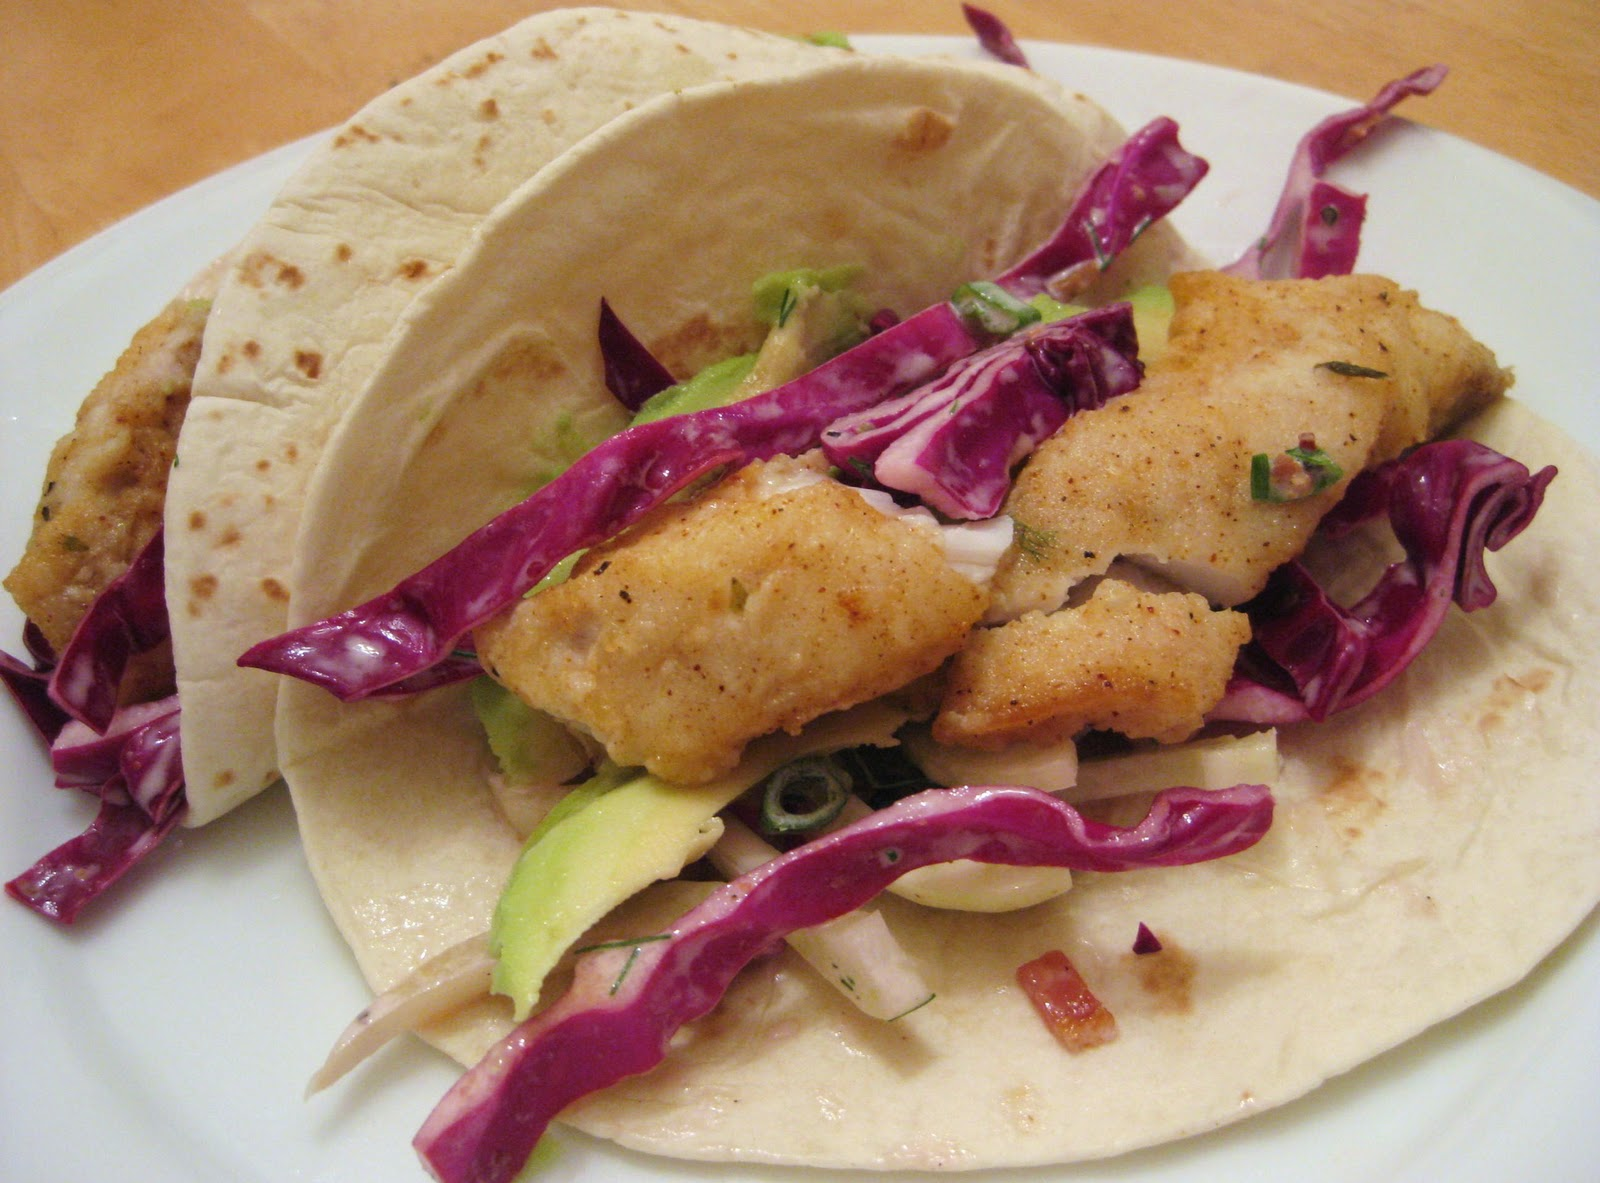 the joyful table fish tacos with red cabbage and fennel slaw